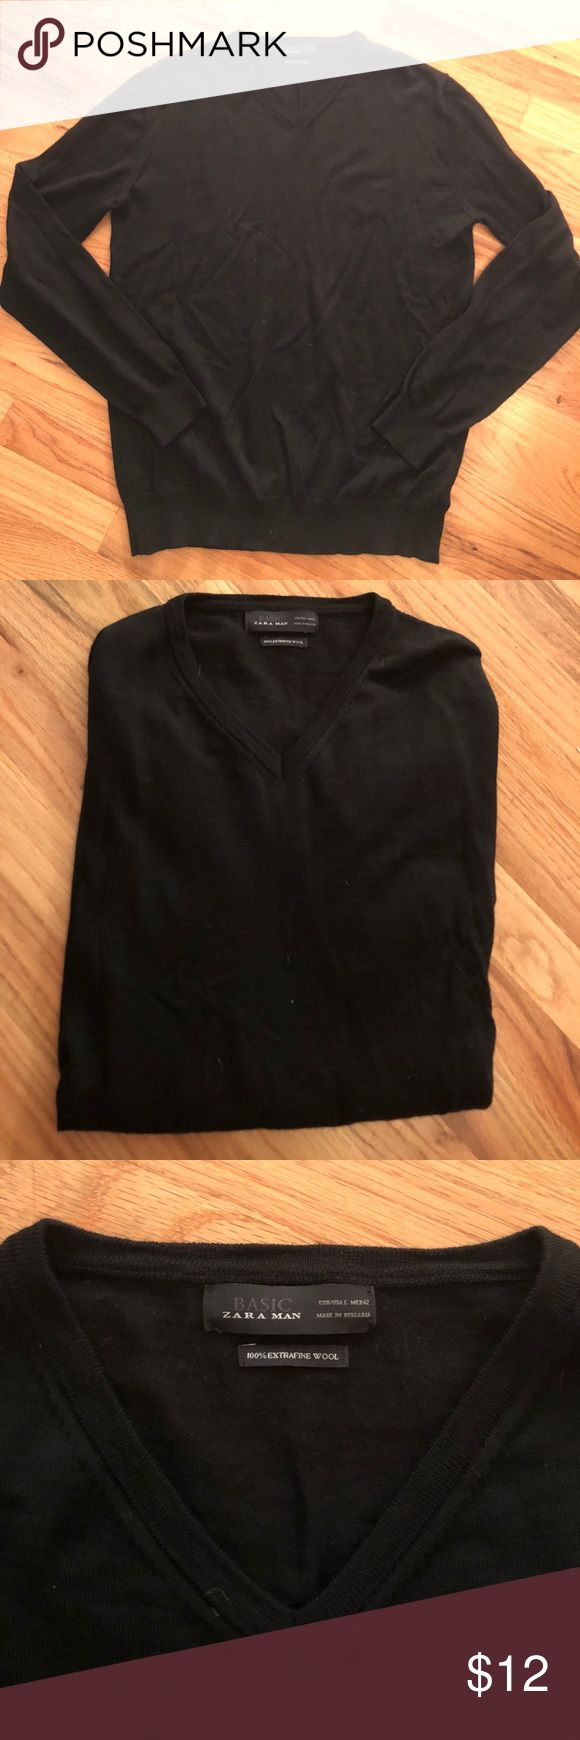 ZARA man, Basic black Wool sweater, LG Preloved.  Maybe worn twice.  Dry cleaned only.  Solid black ZARA Basic Man v neck sweater.  100% extra fine wool. Small pull at bottom, see picture, not noticeable when on. Zara Sweaters V-Neck